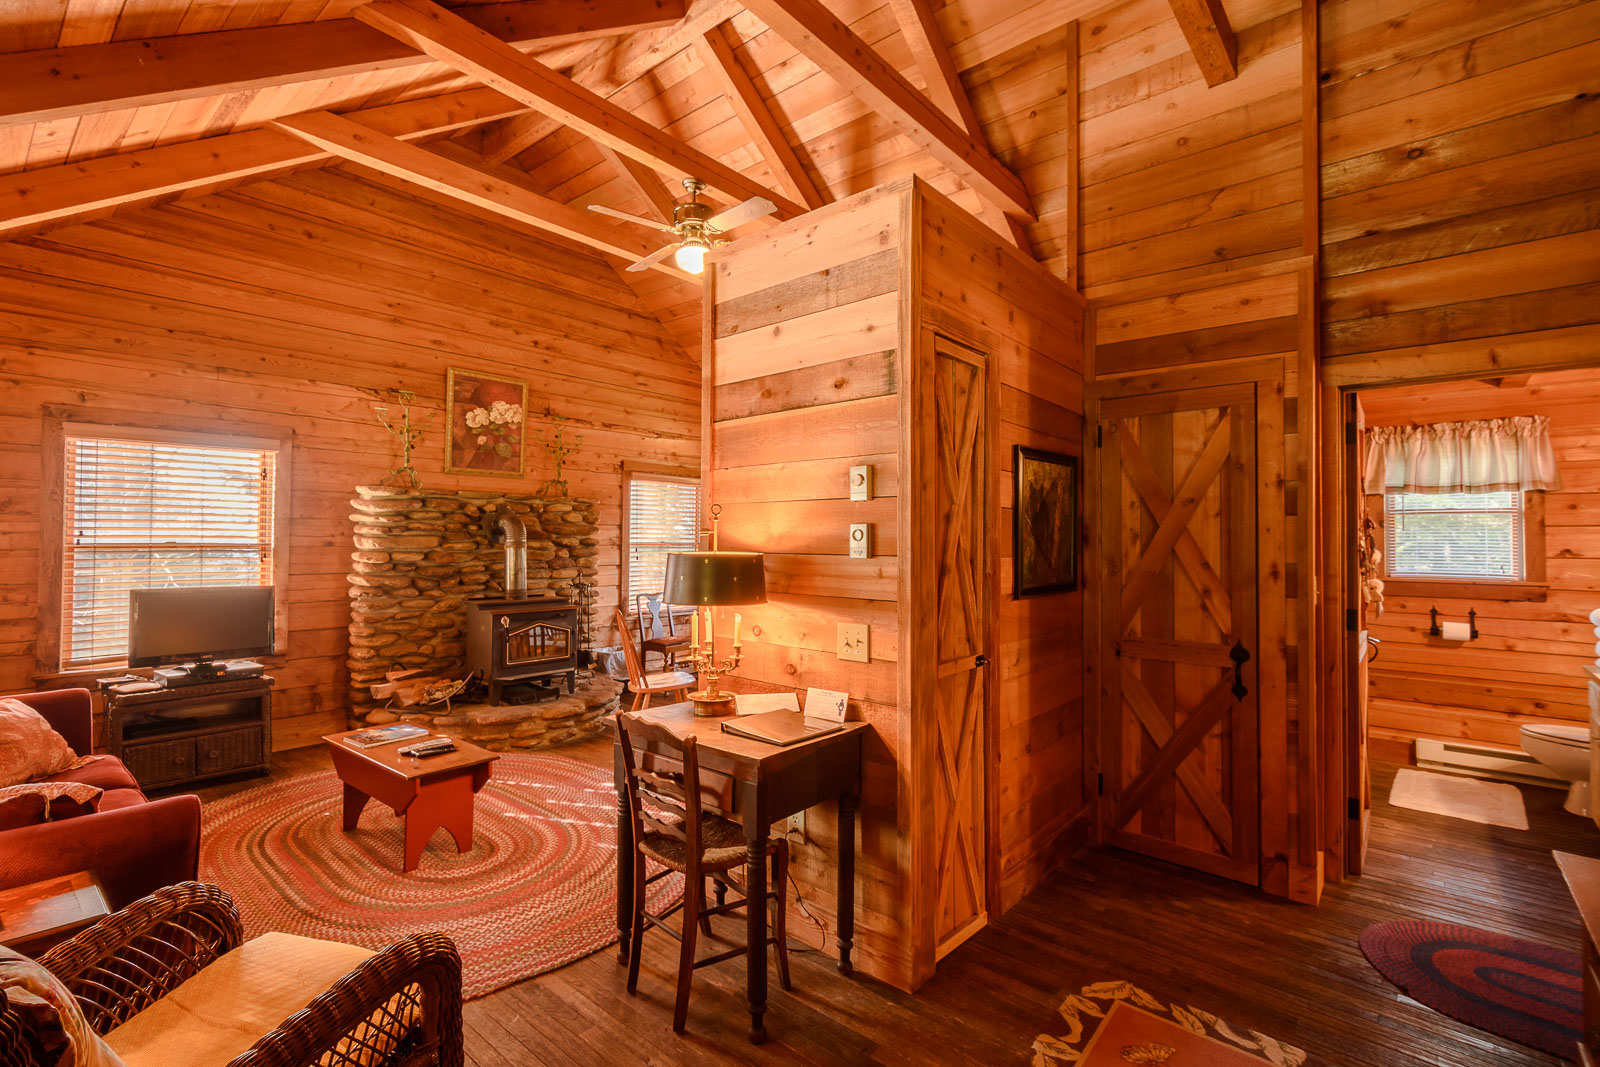 cabins sugar friendly area cabin mountain boone nc log rock cab in blowing cheap pet small rentals